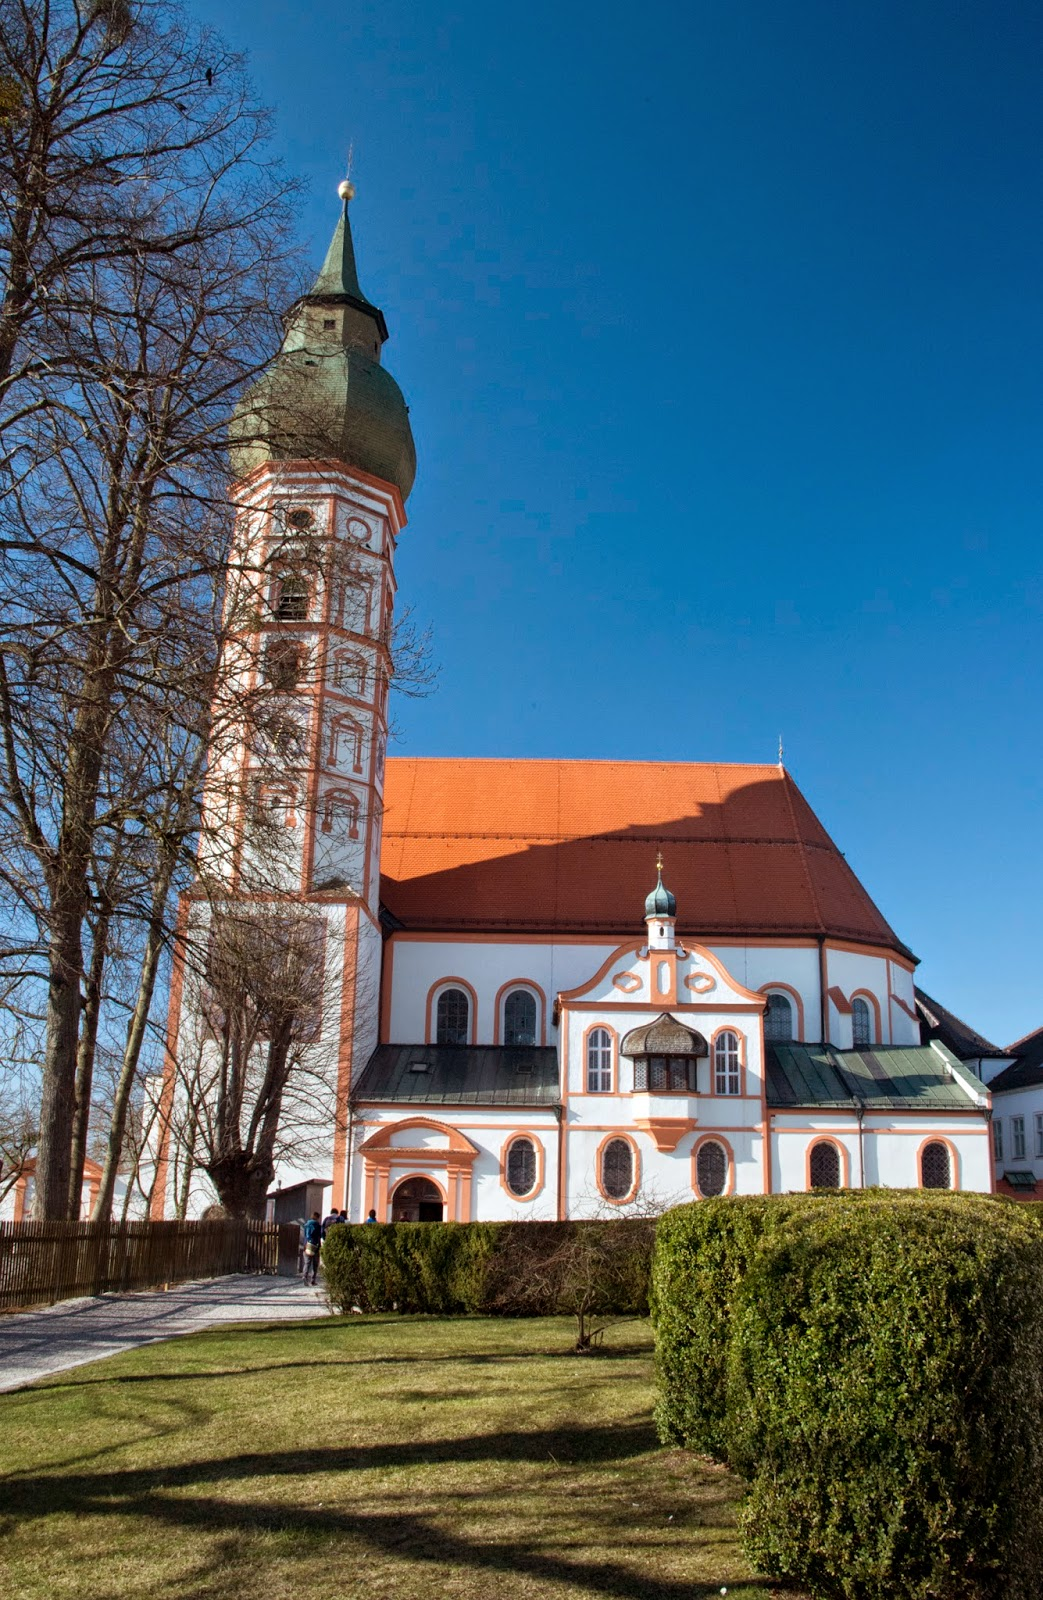 Andechs Abbey, Dießen and Herrsching in Southern Bavaria, Germany